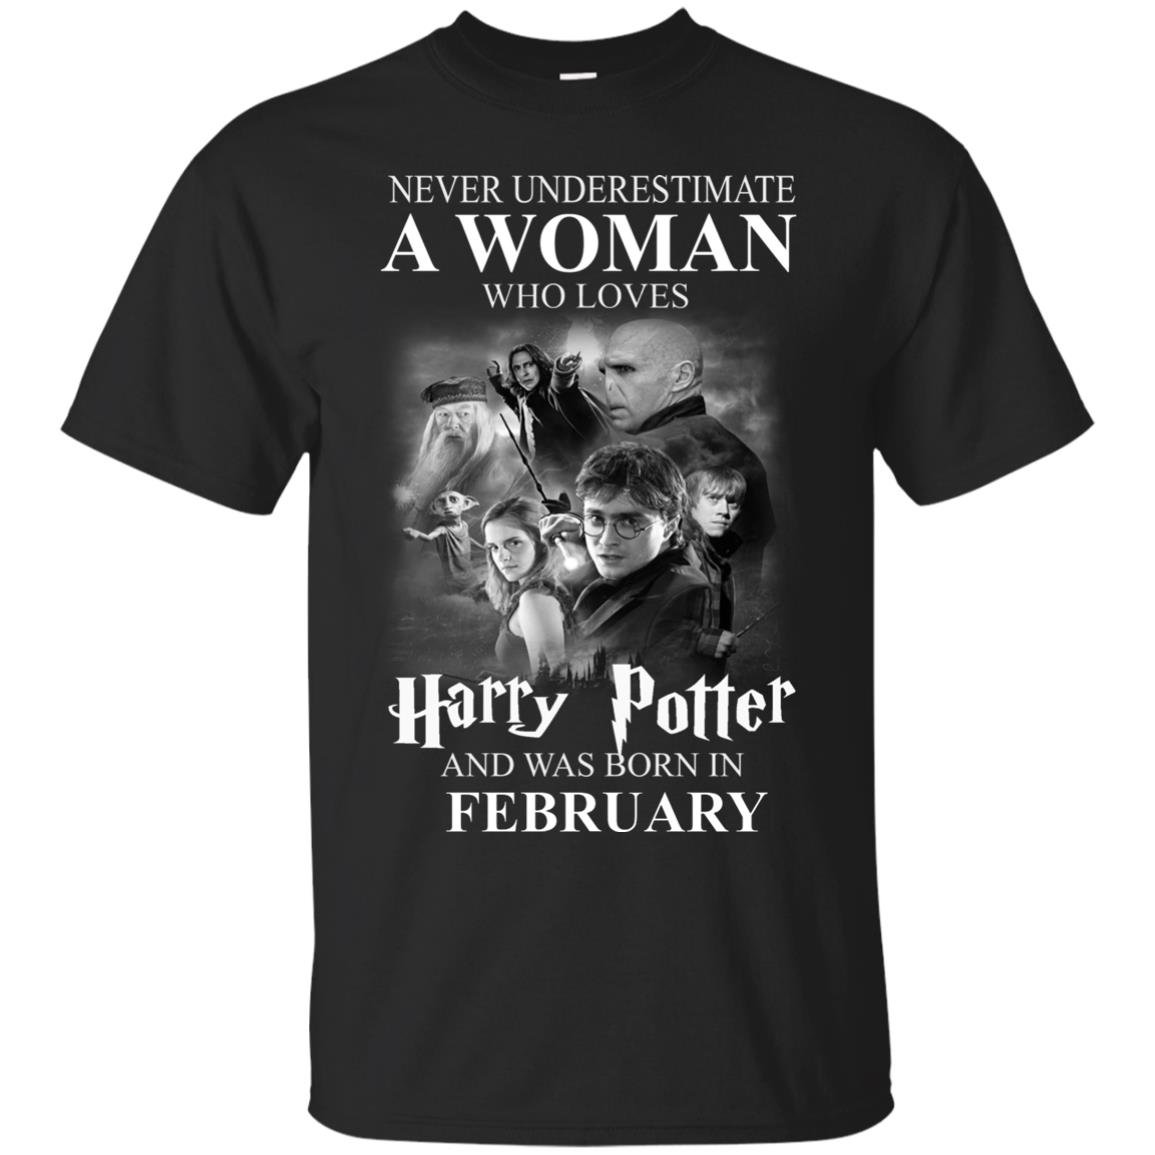 image 1146 - Never underestimate A woman who watches Harry Potter and was born in February shirt